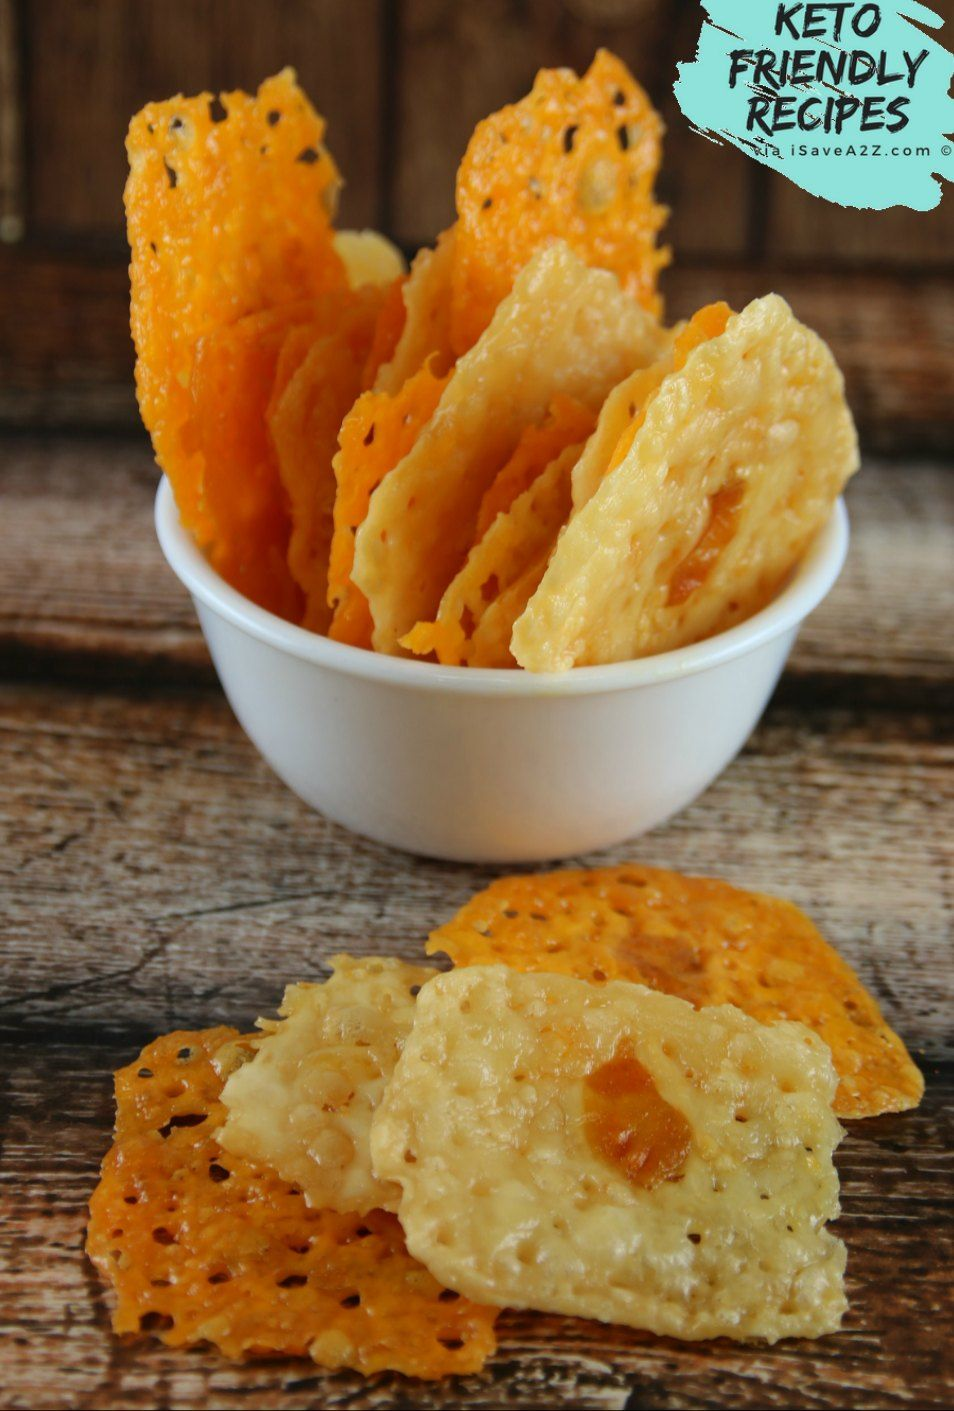 What are chips made of? 56